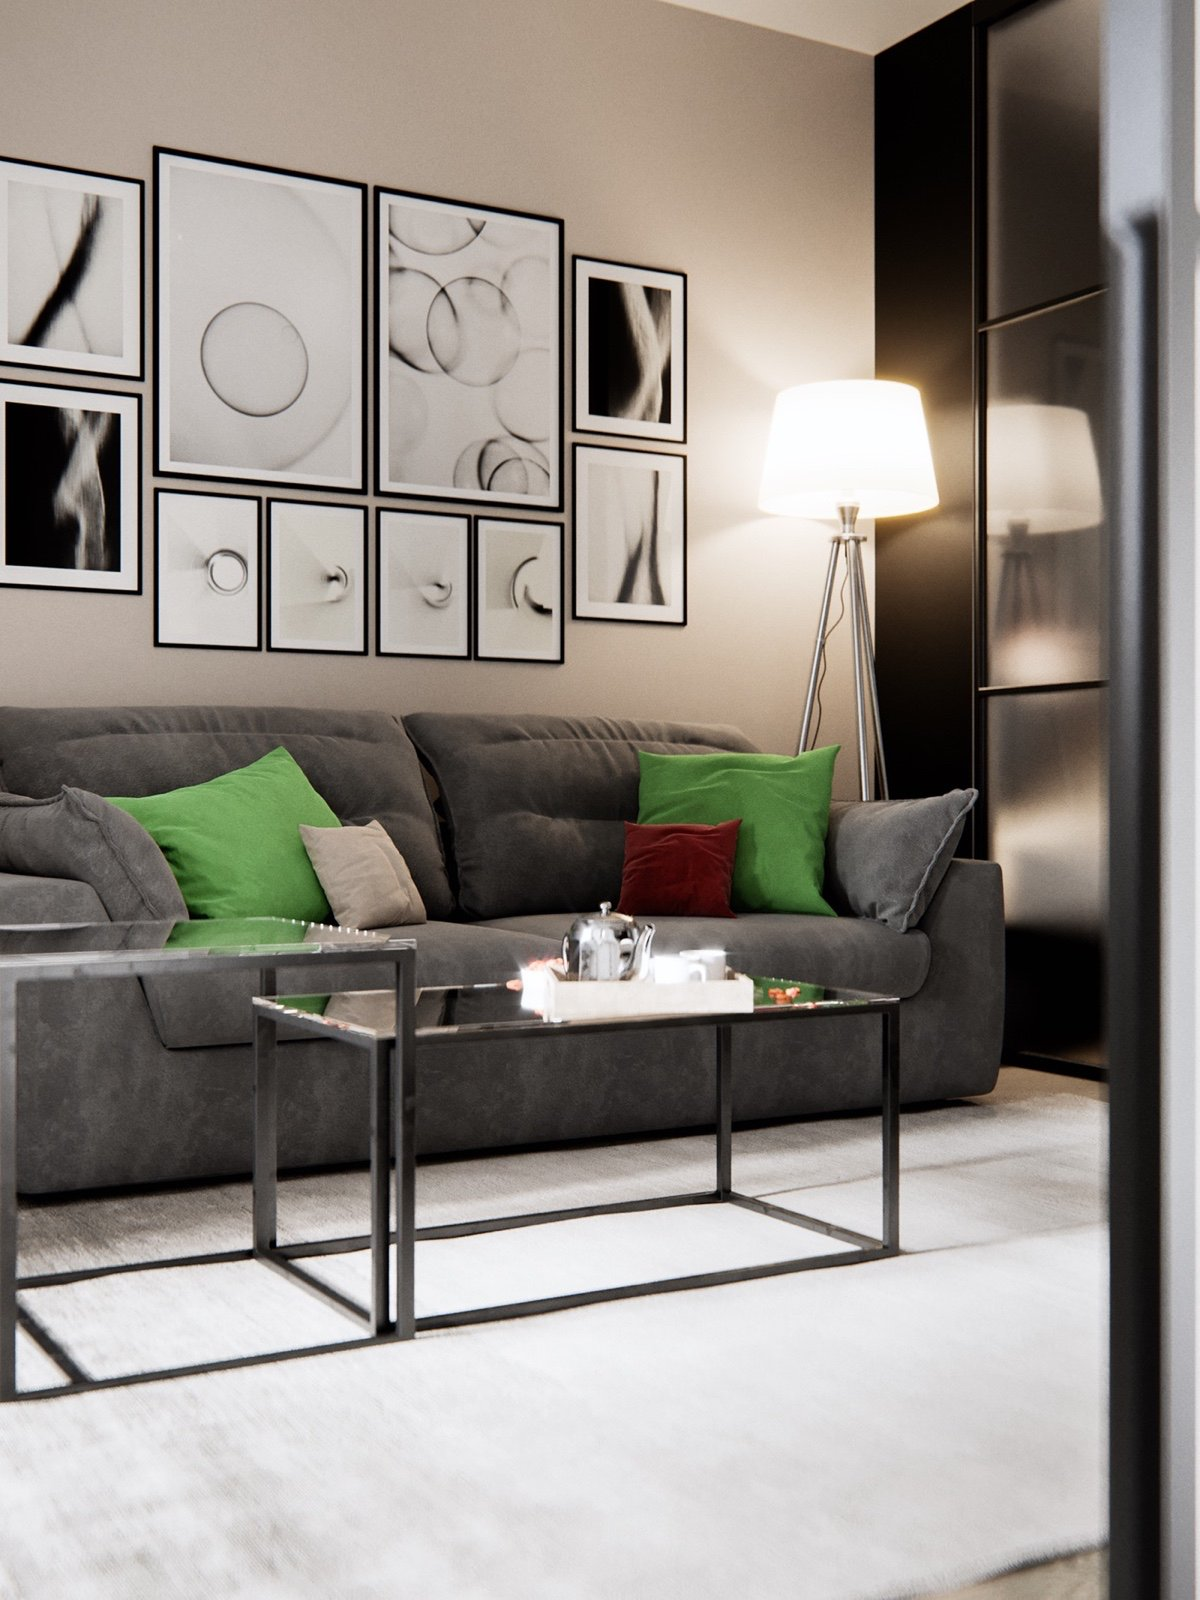 Red And Green Living Room Color Scheme - 3 modern studio apartments with glass walled bedrooms